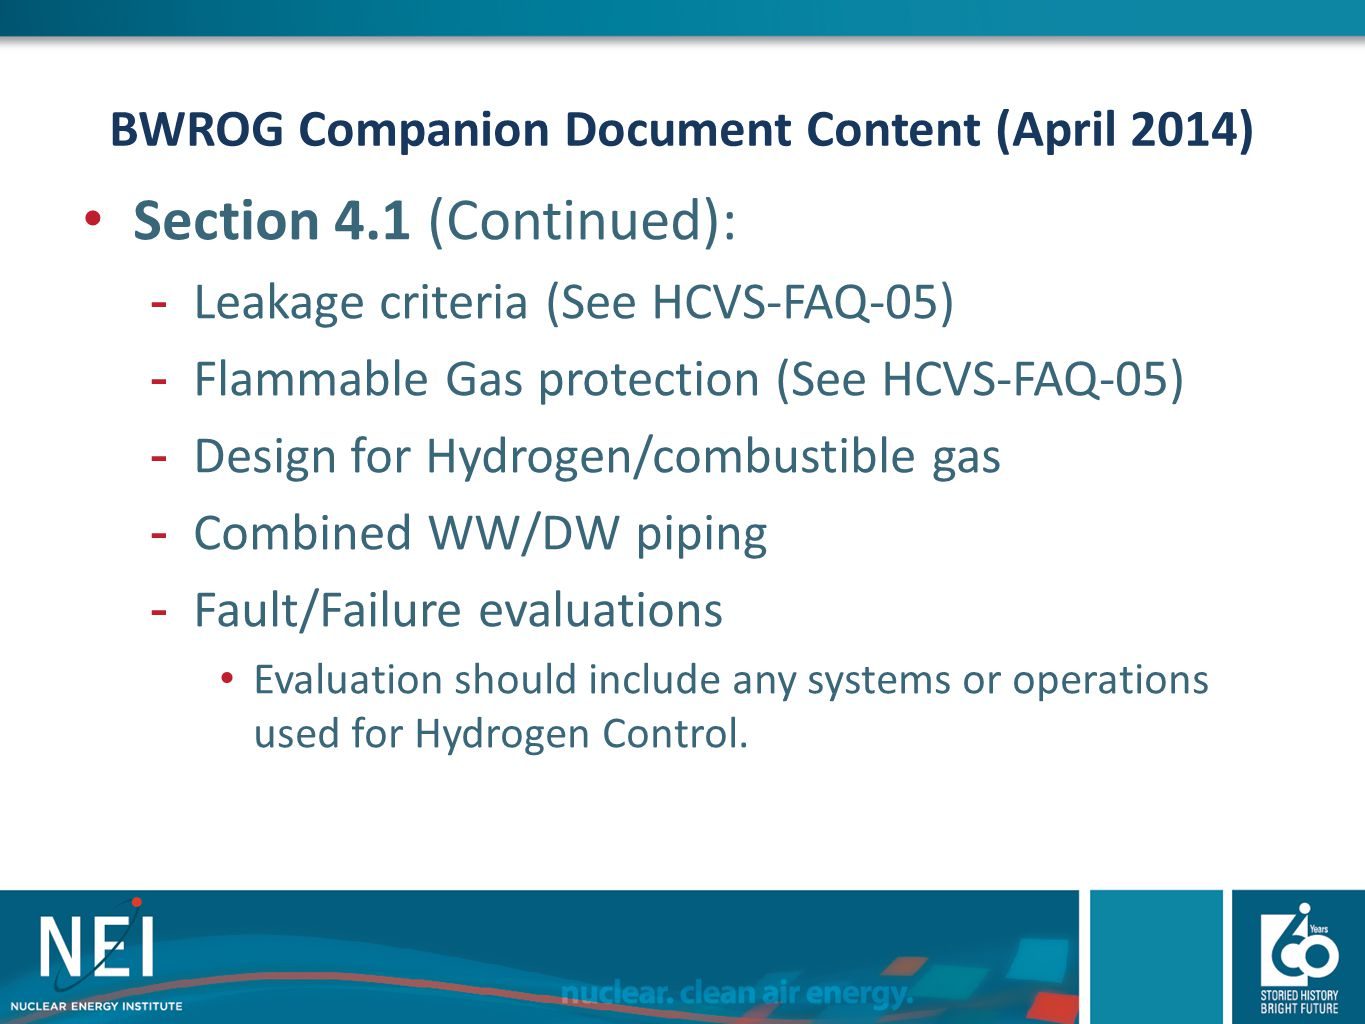 BWROG Companion Document Content (April 2014) Section 4.1 (Continued): -Leakage criteria (See HCVS-FAQ-05) -Flammable Gas protection (See HCVS-FAQ-05)